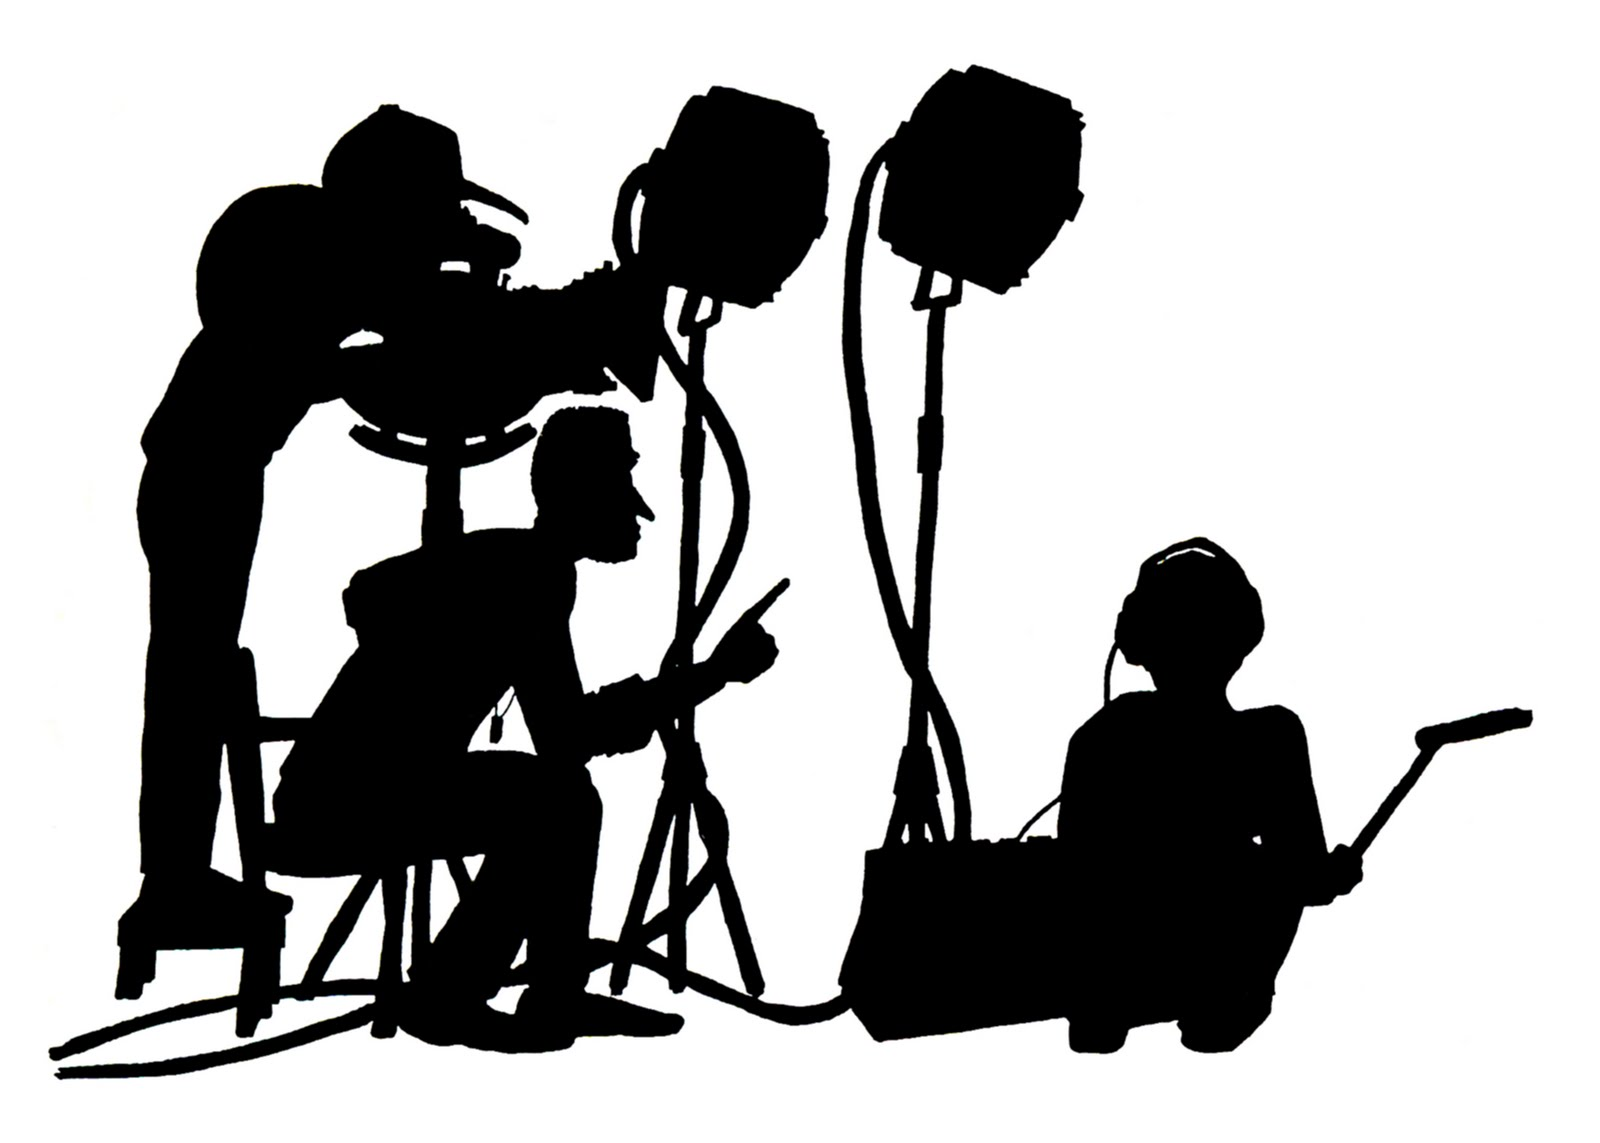 Actor clipart studio light Filmmaking production Filmmaking Film Indy